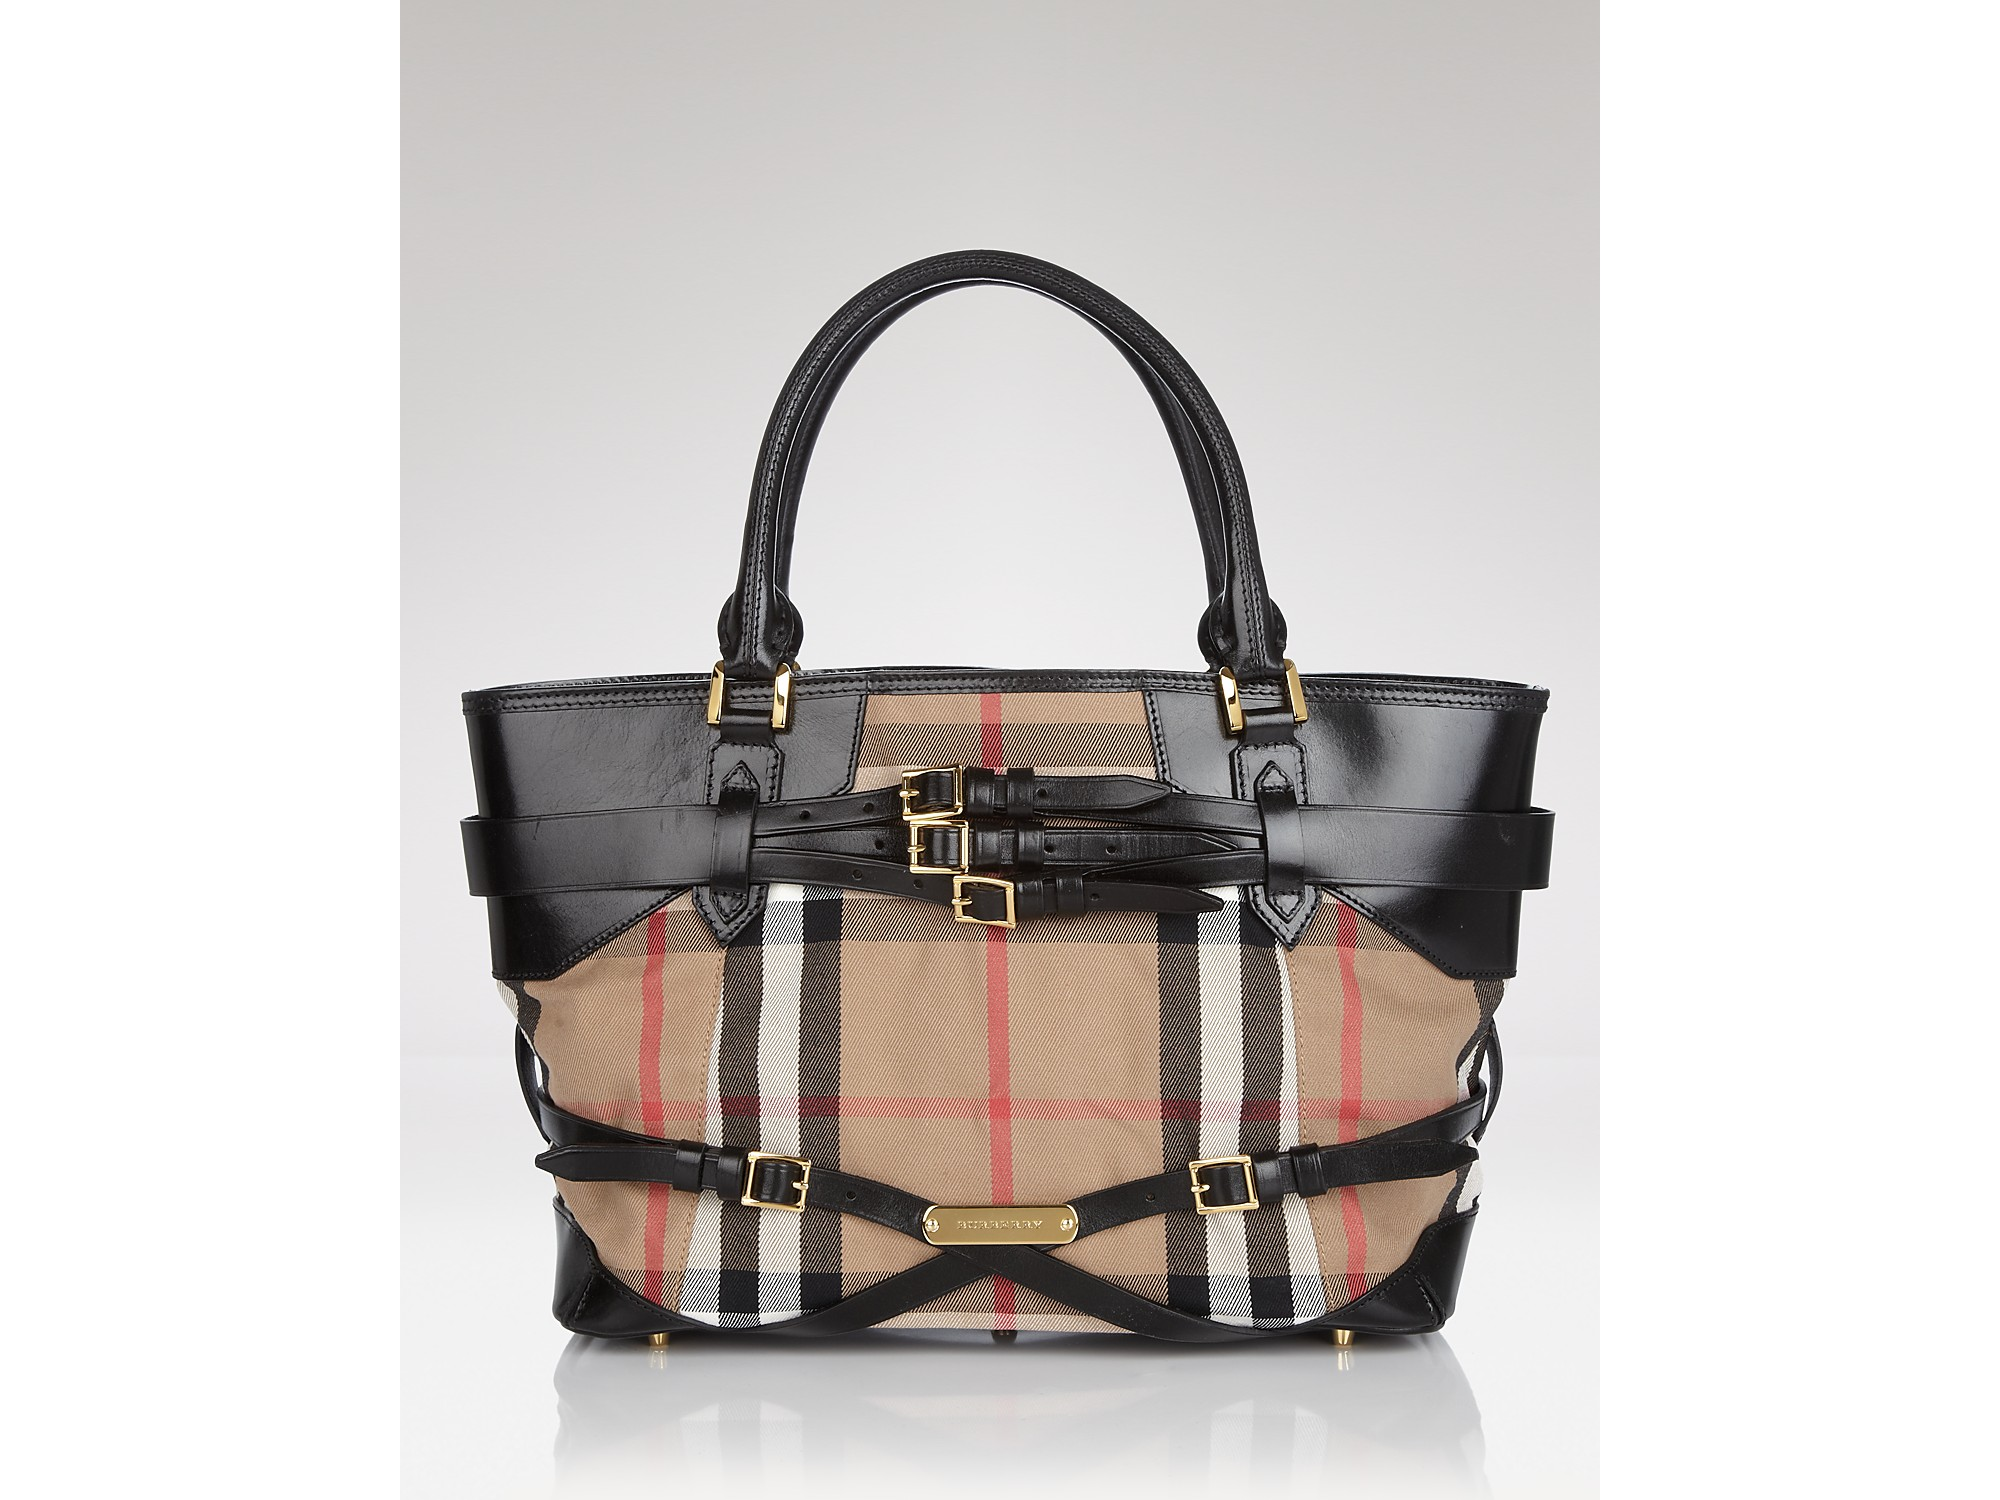 Lyst - Burberry Tote Bridle House Check Medium Lynher in Black c31f0f415fb88